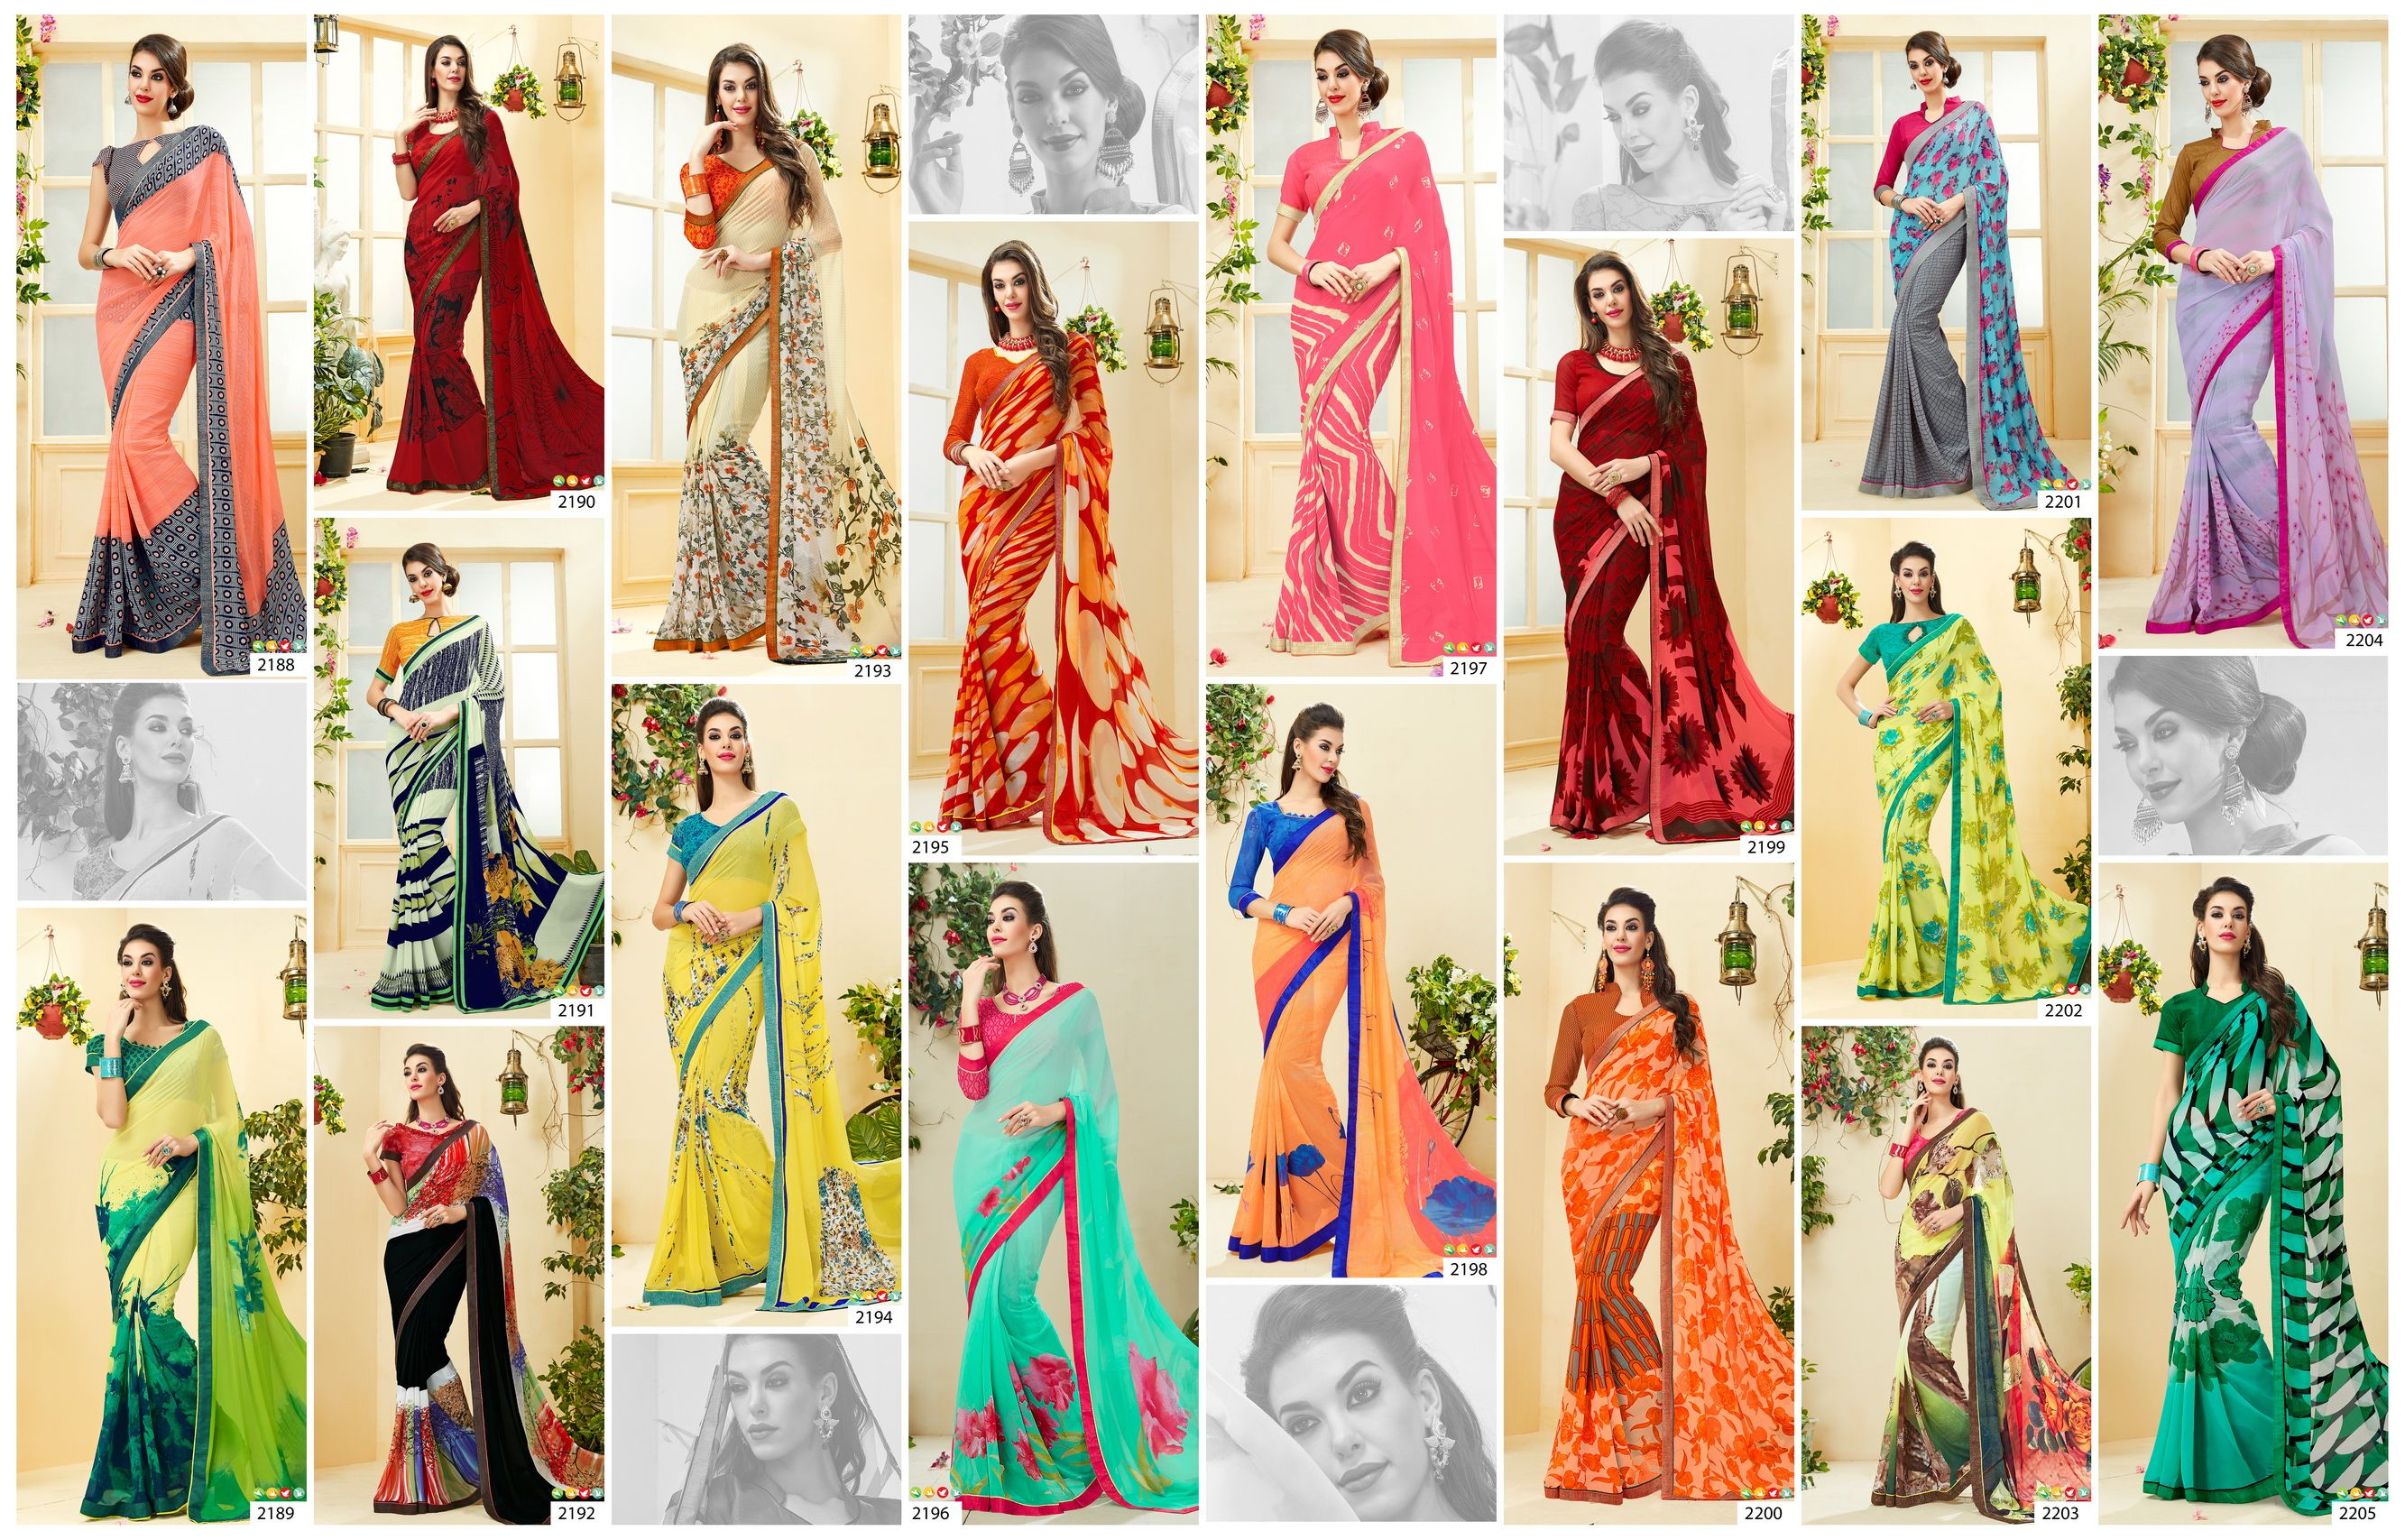 Catalog: LAKSHYA 3 FOR Prices / Orders / Inquiry @ Call / WhatsApp: +91 9726300063  Full Catalog Link: https://goo.gl/ldN3U9